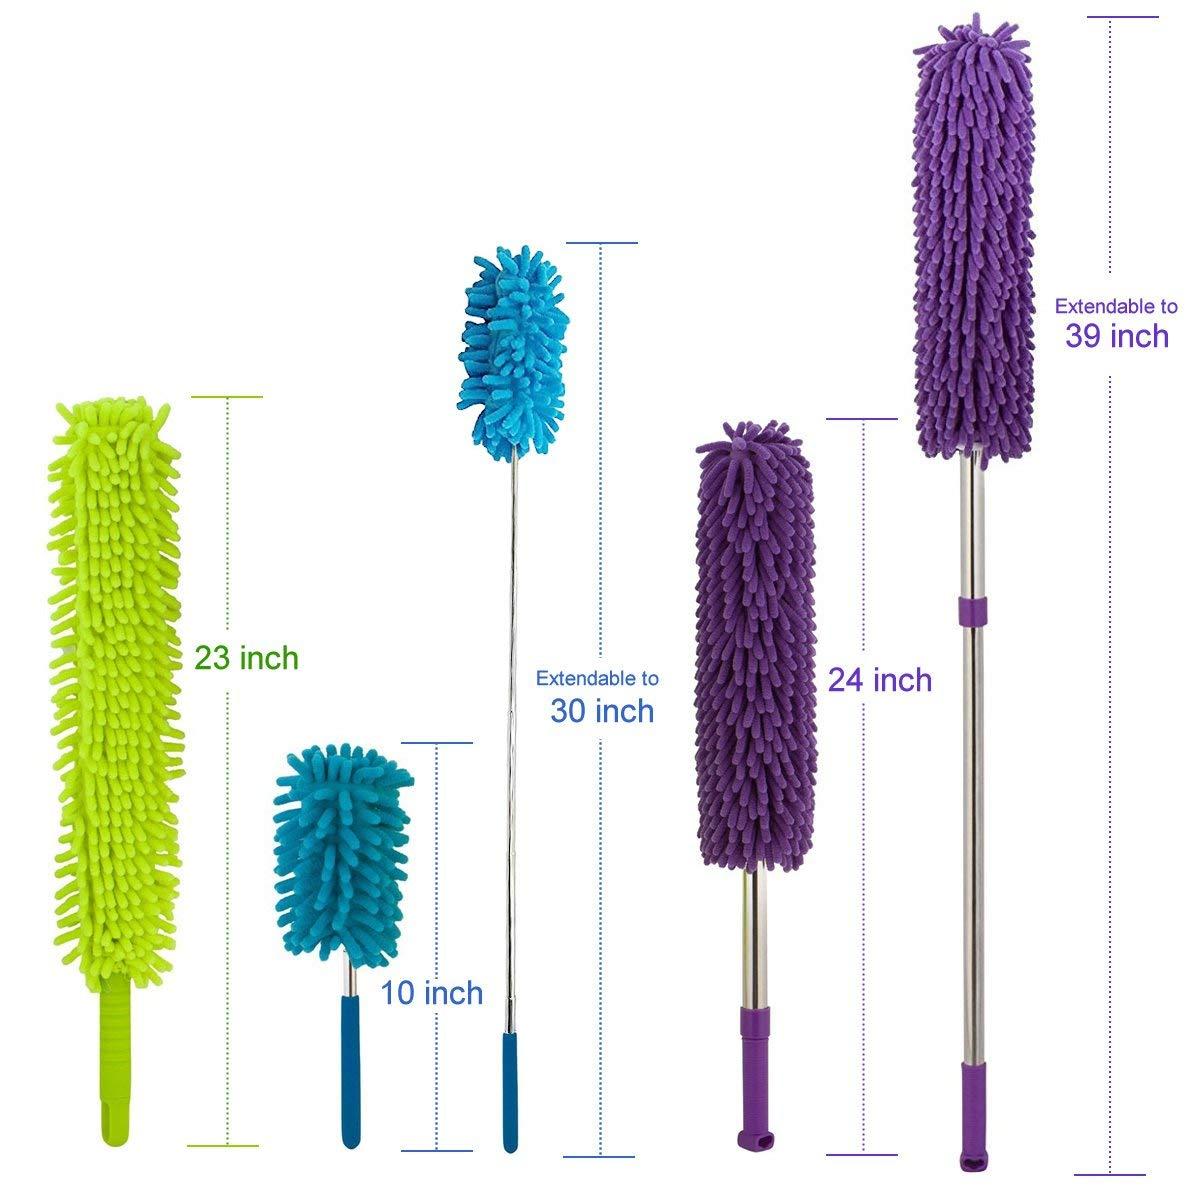 Radiator 1x Mini Telescopic Duster for Ceiling Fan 1x Extendable Duster with Telescopic Handle Microfiber Long Handled Dusters Set Window Cleaning Supplies Cobweb 3 Pack 1x Bendable Duster